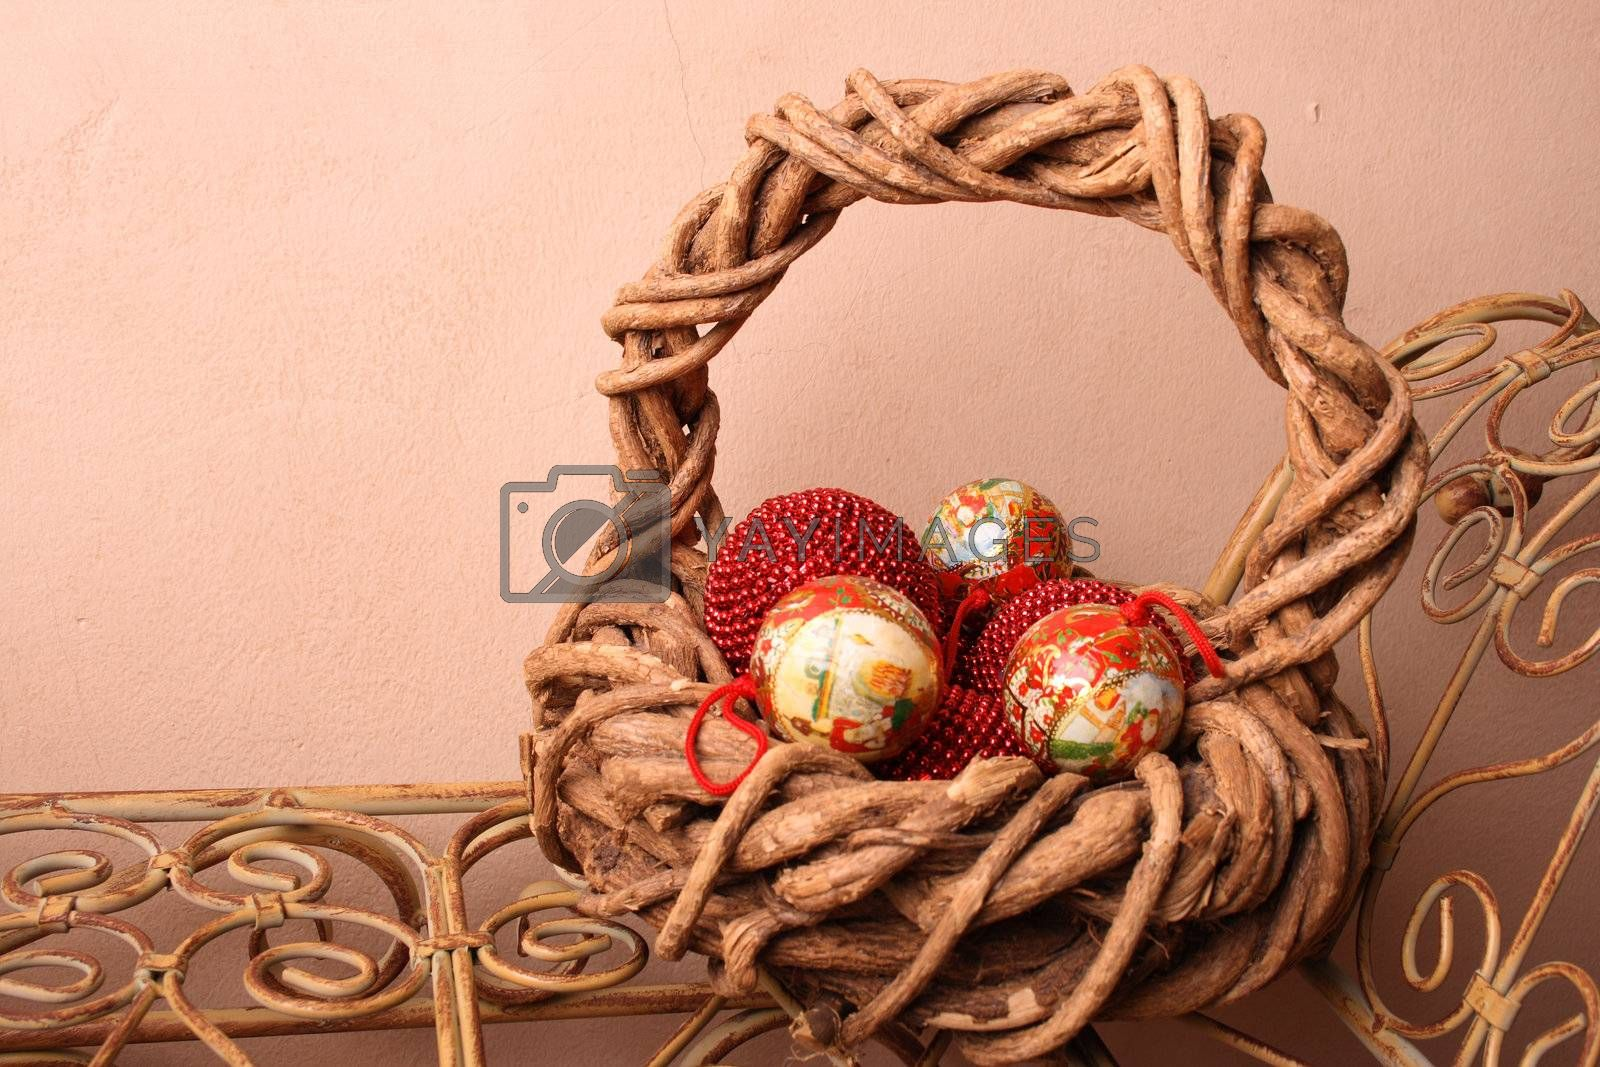 Woven Christmas basket on an old rustic bench